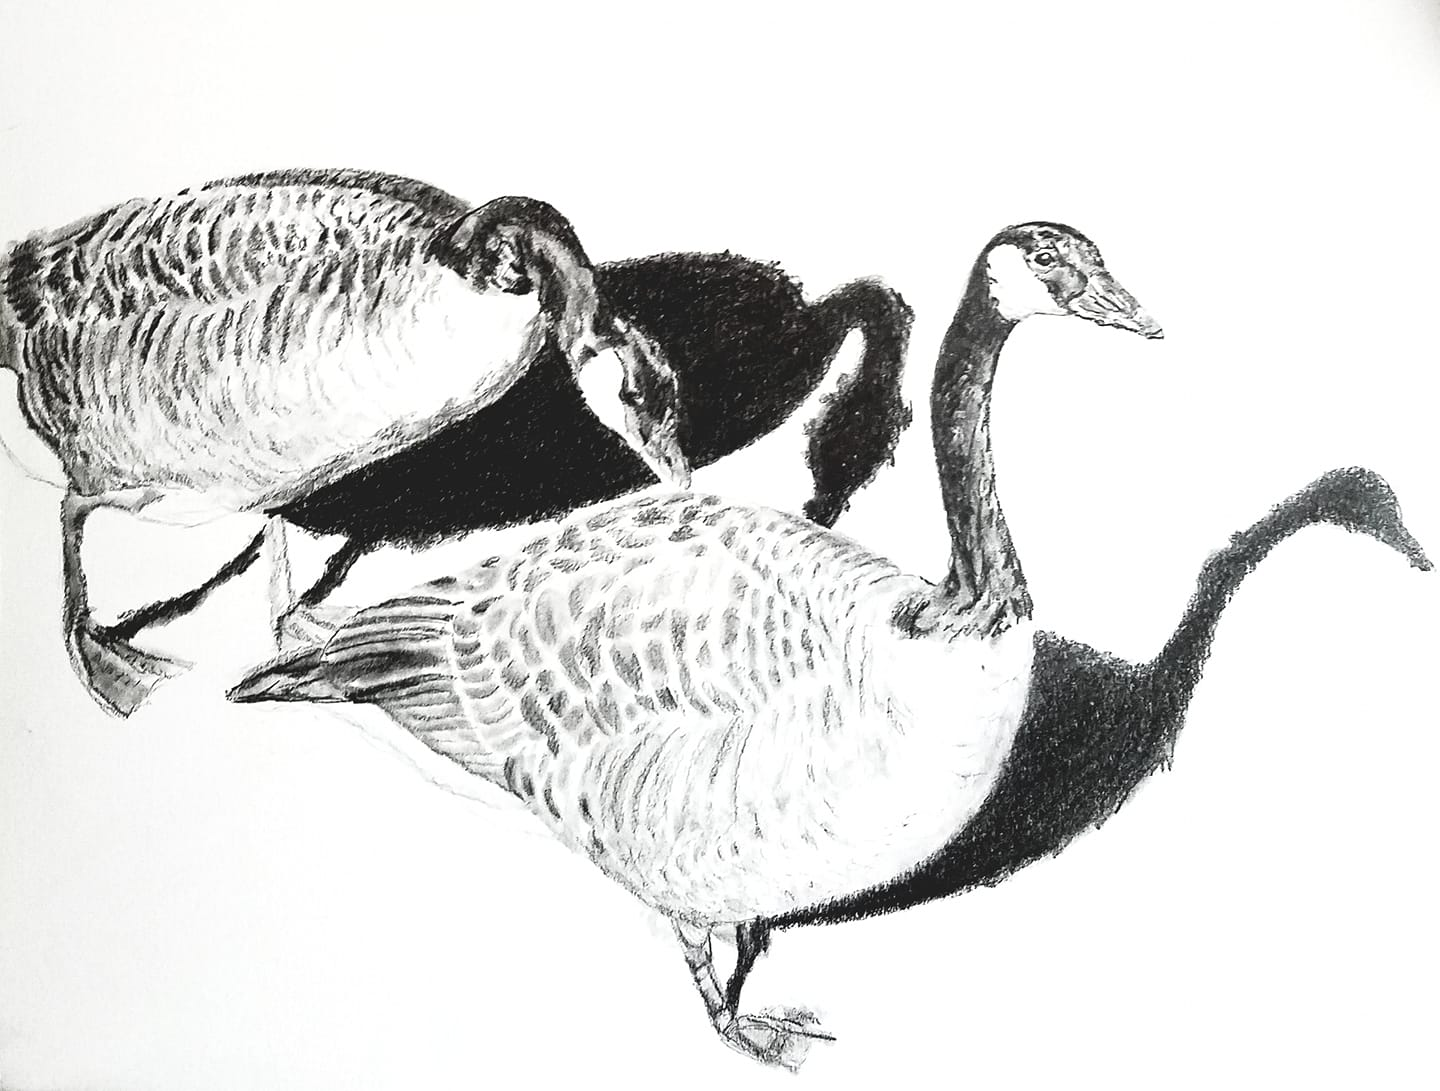 Canada geese; graphite; 2019